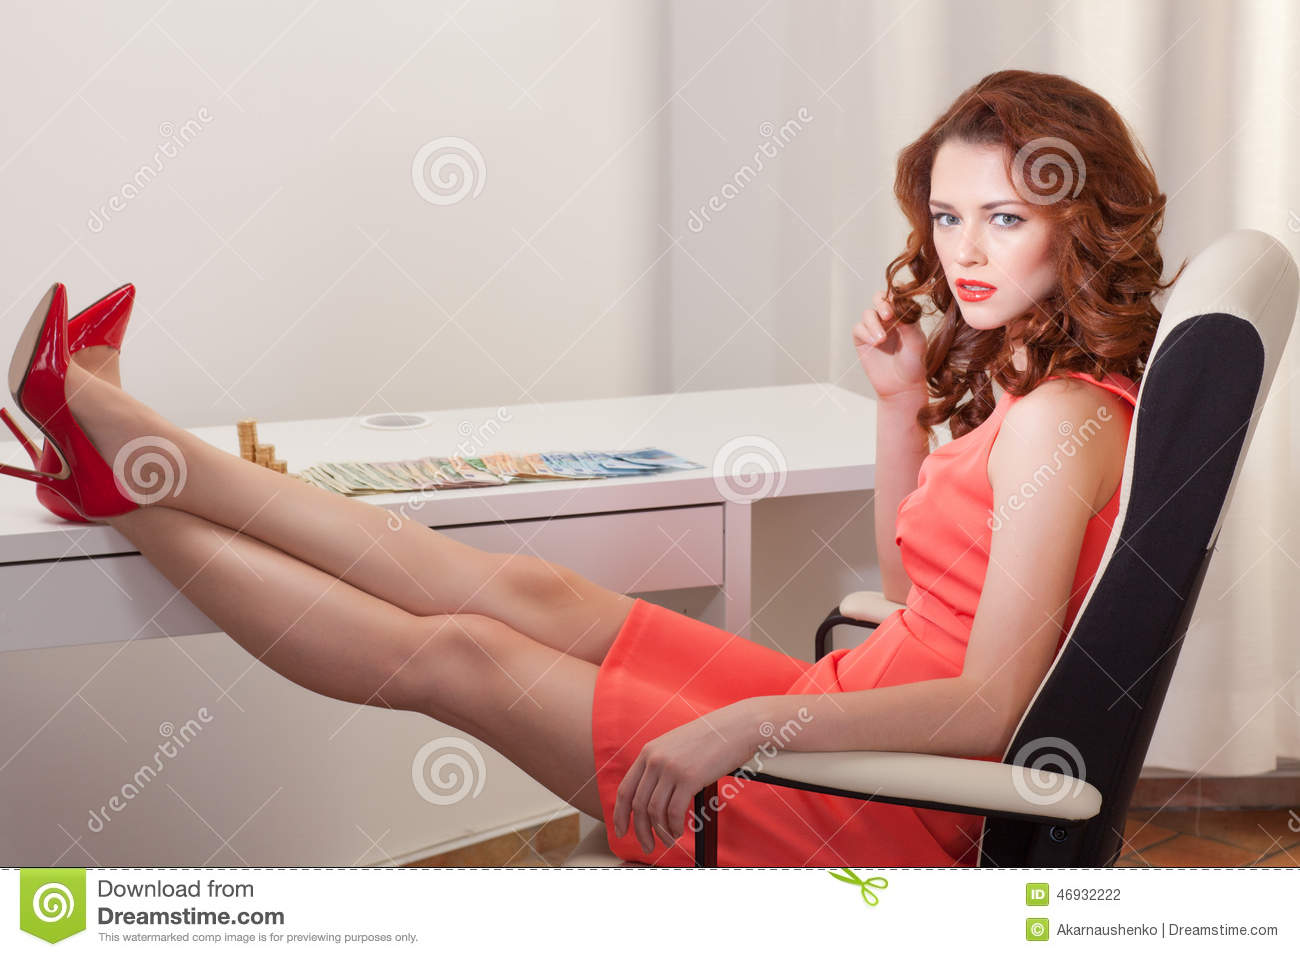 Woman In Pink Dress Sits At A Desk With His Feet Up On The